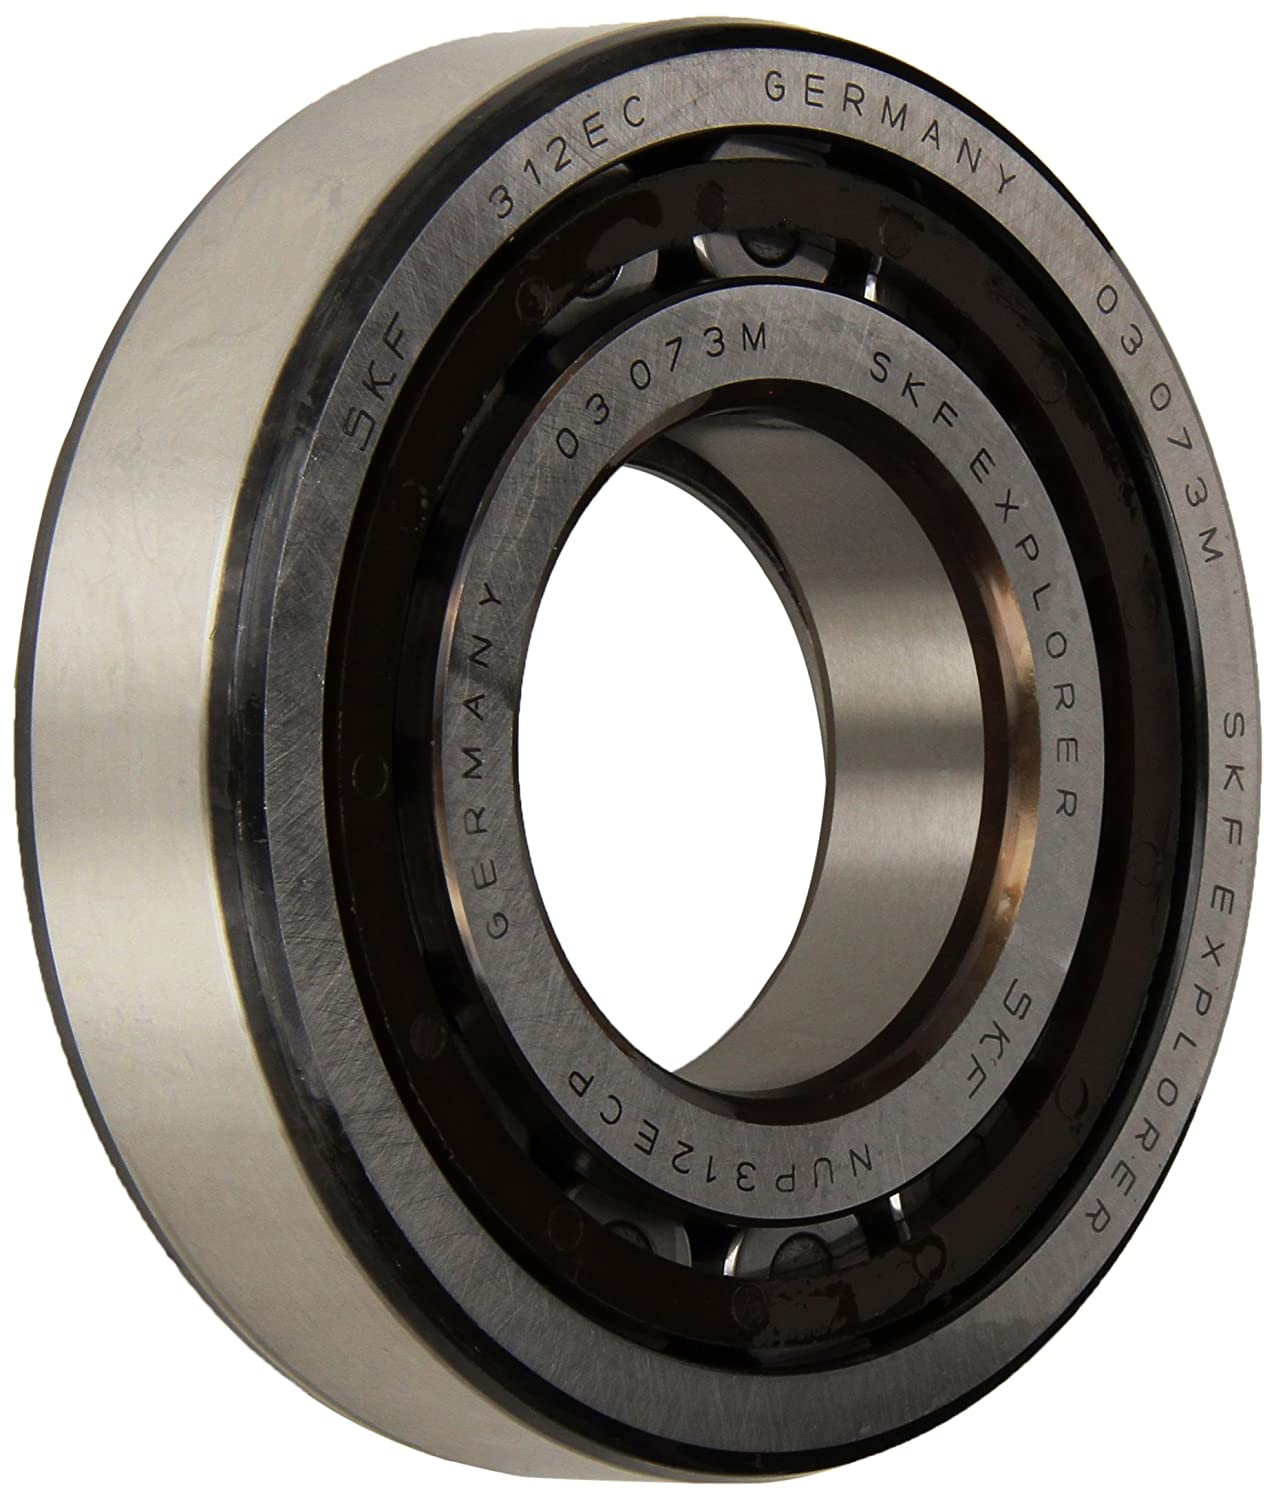 SKF Cylindrical Radial Roller Bearing, 60 ID, Bearing steel NUP 312 ECP